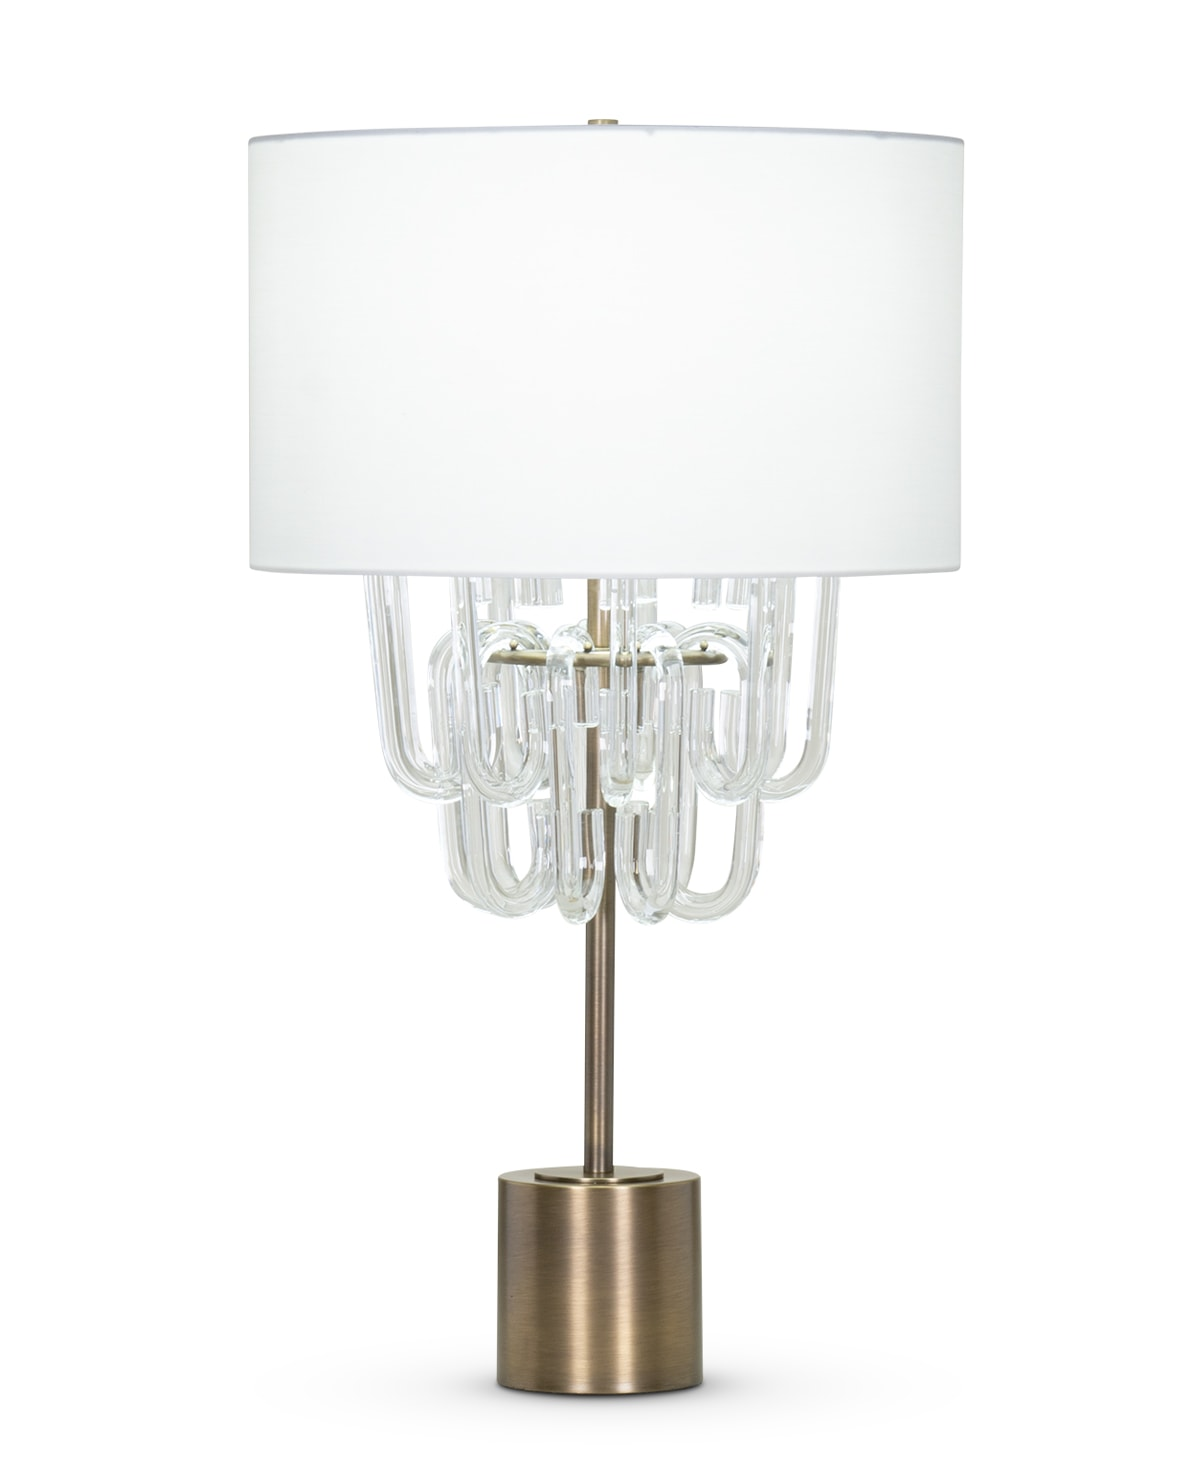 FlowDecor Grenada Table Lamp in metal with antique brass finish and glass and off-white cotton drum shade (# 4412)